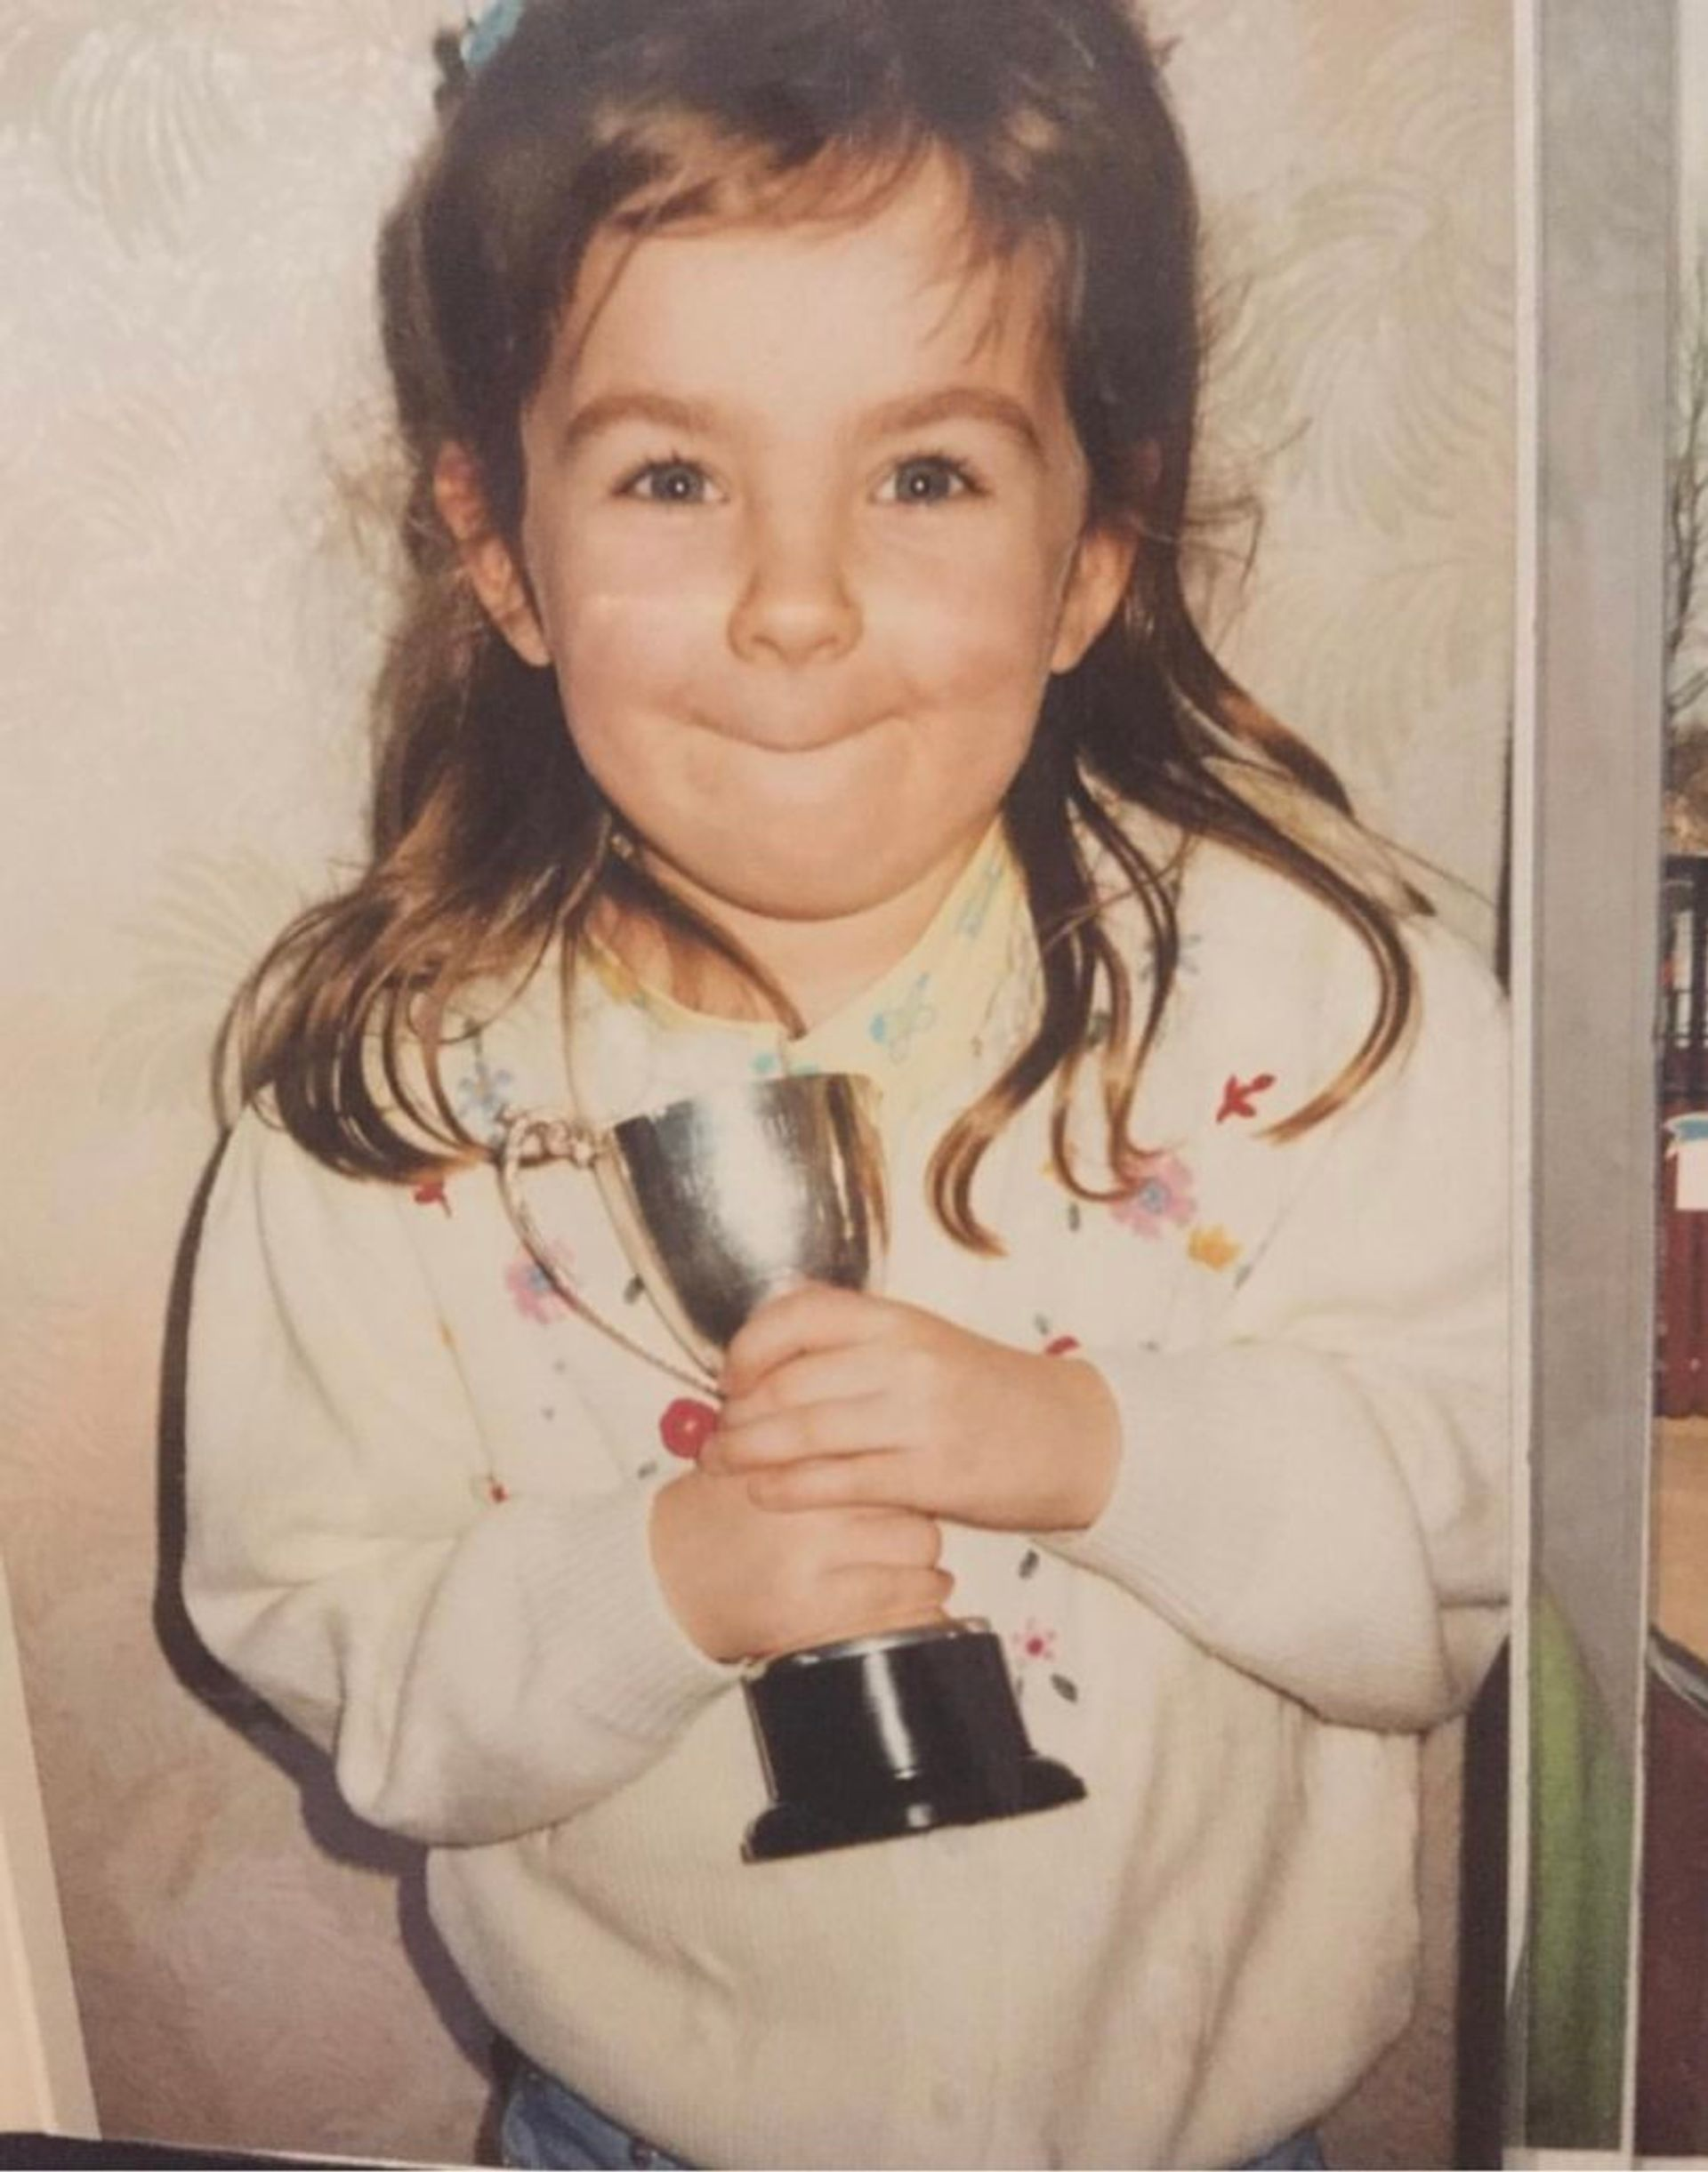 Emma as a child. She is wearing a white sweater and holding a little trophy.